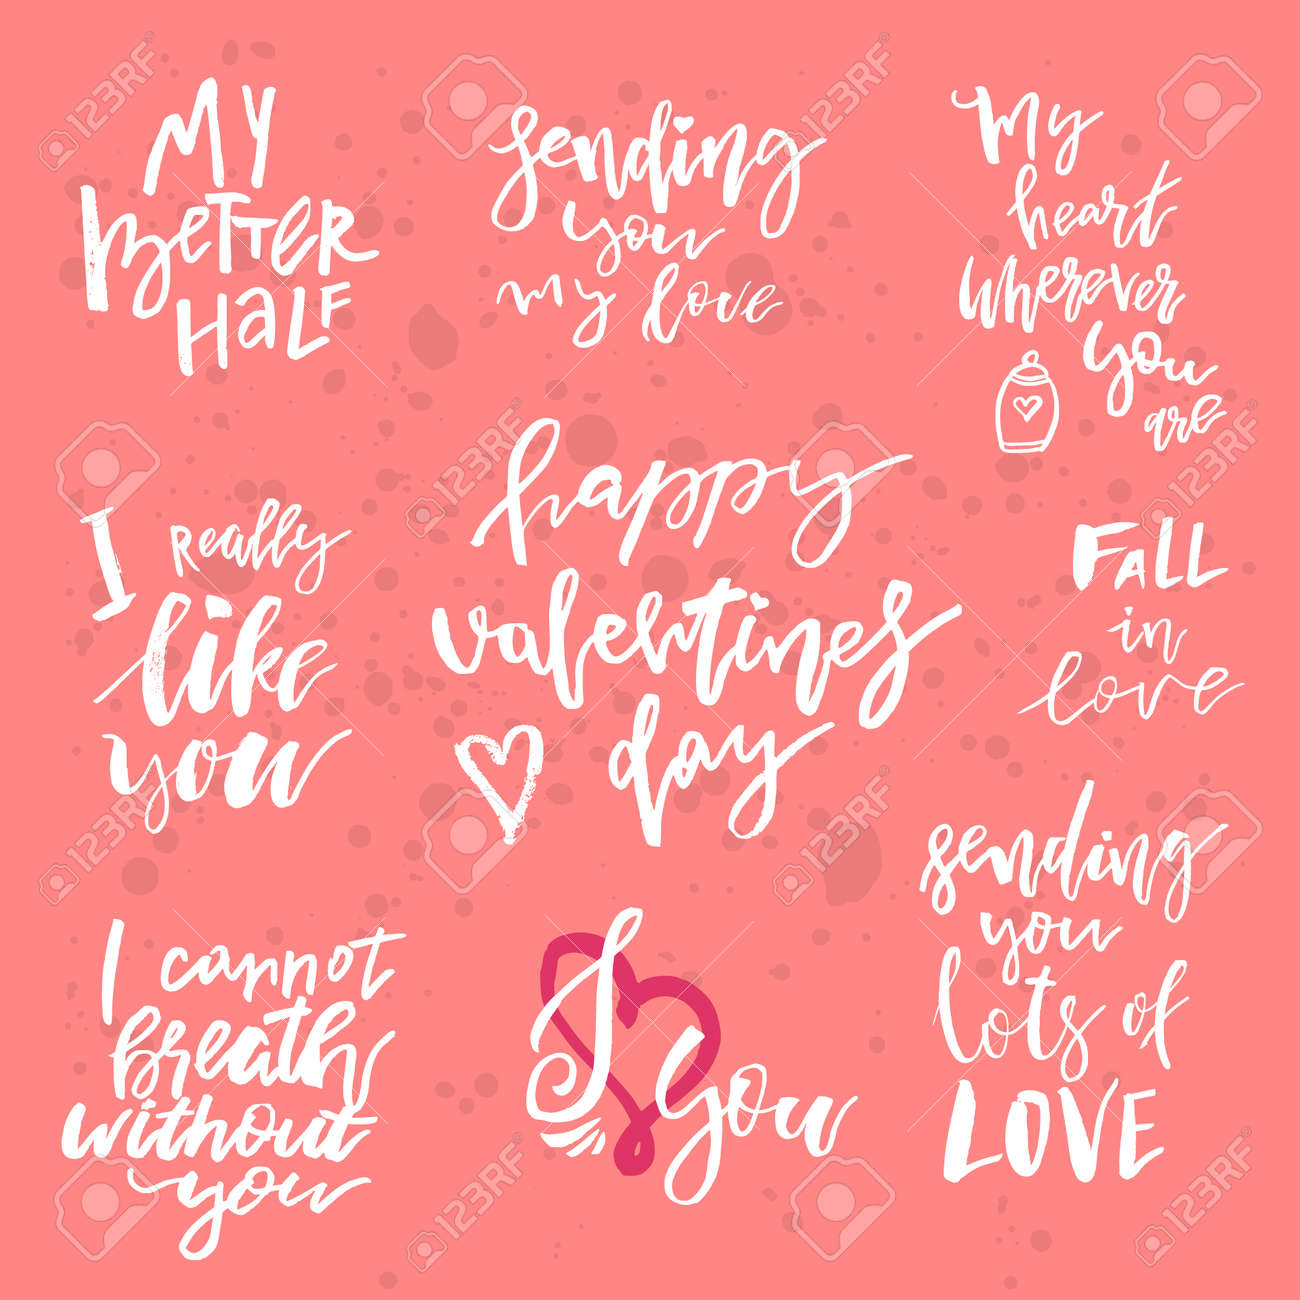 Set Of Valentines Day Romantic Handwritten Quotes And Slogans